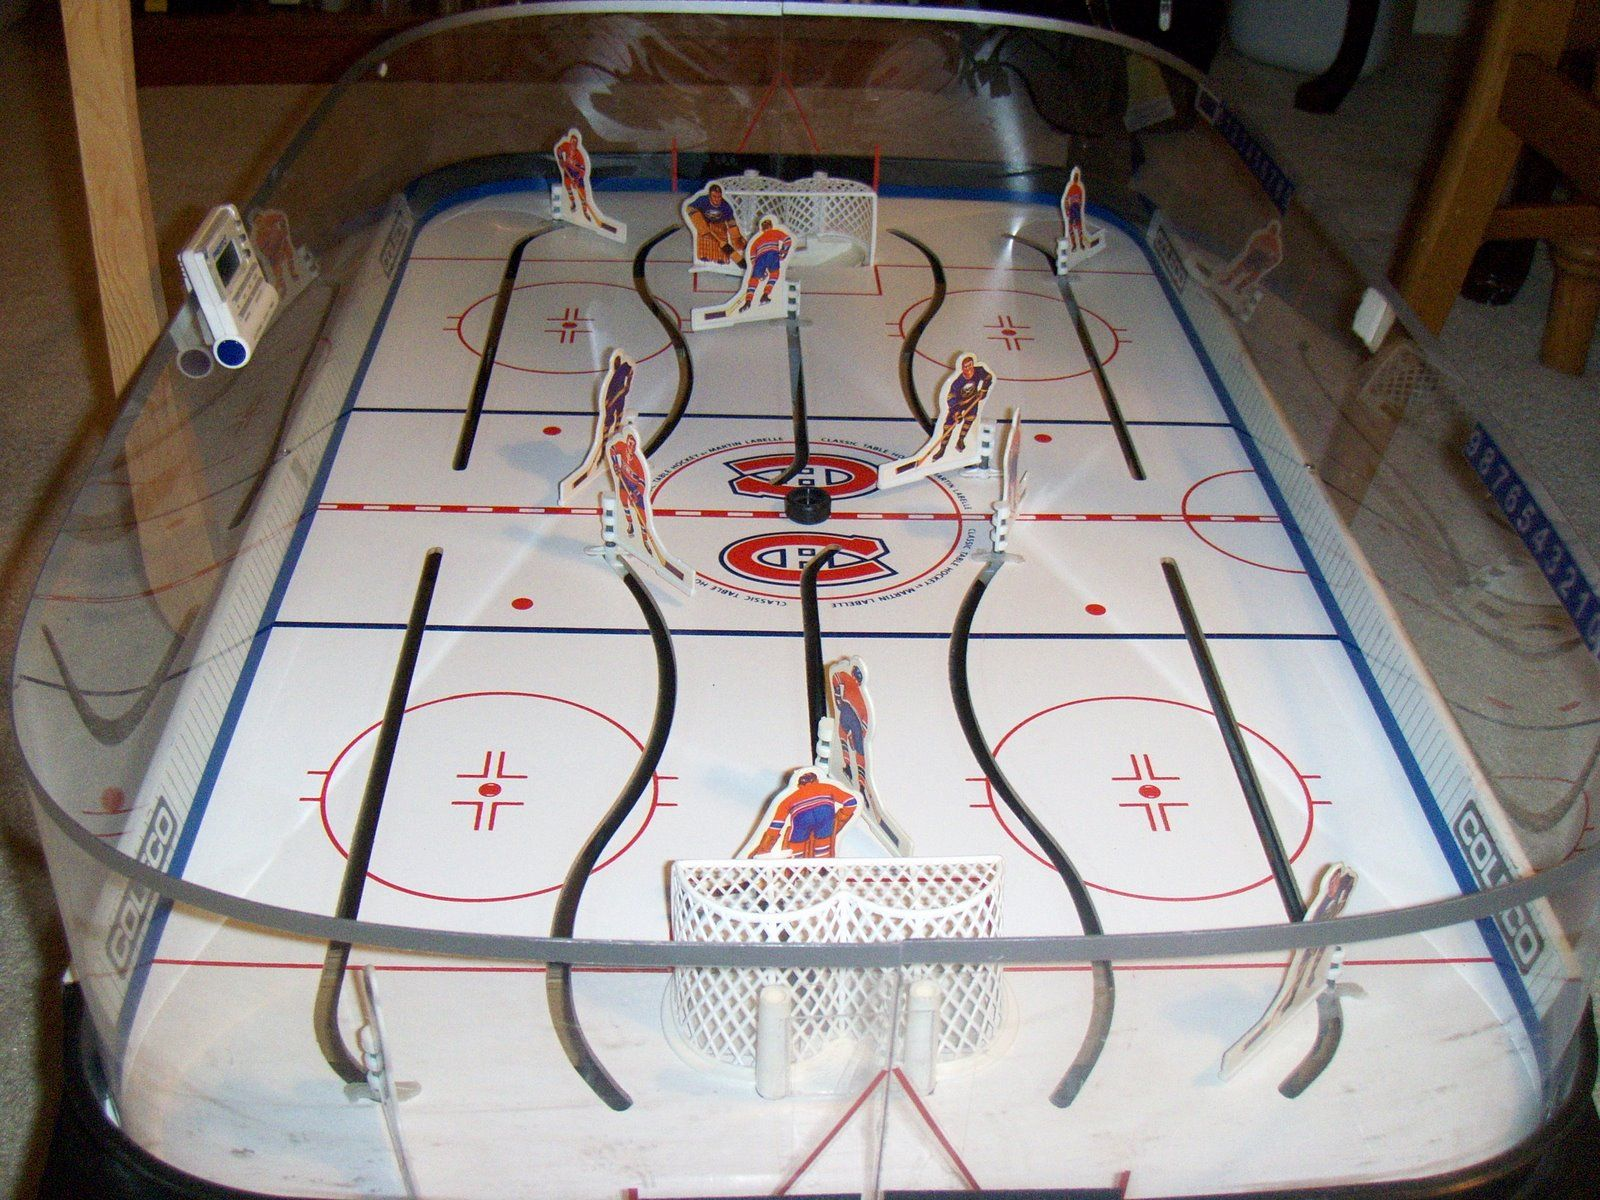 Vintage table hockey - Table Hockey With The Magnetic Puck